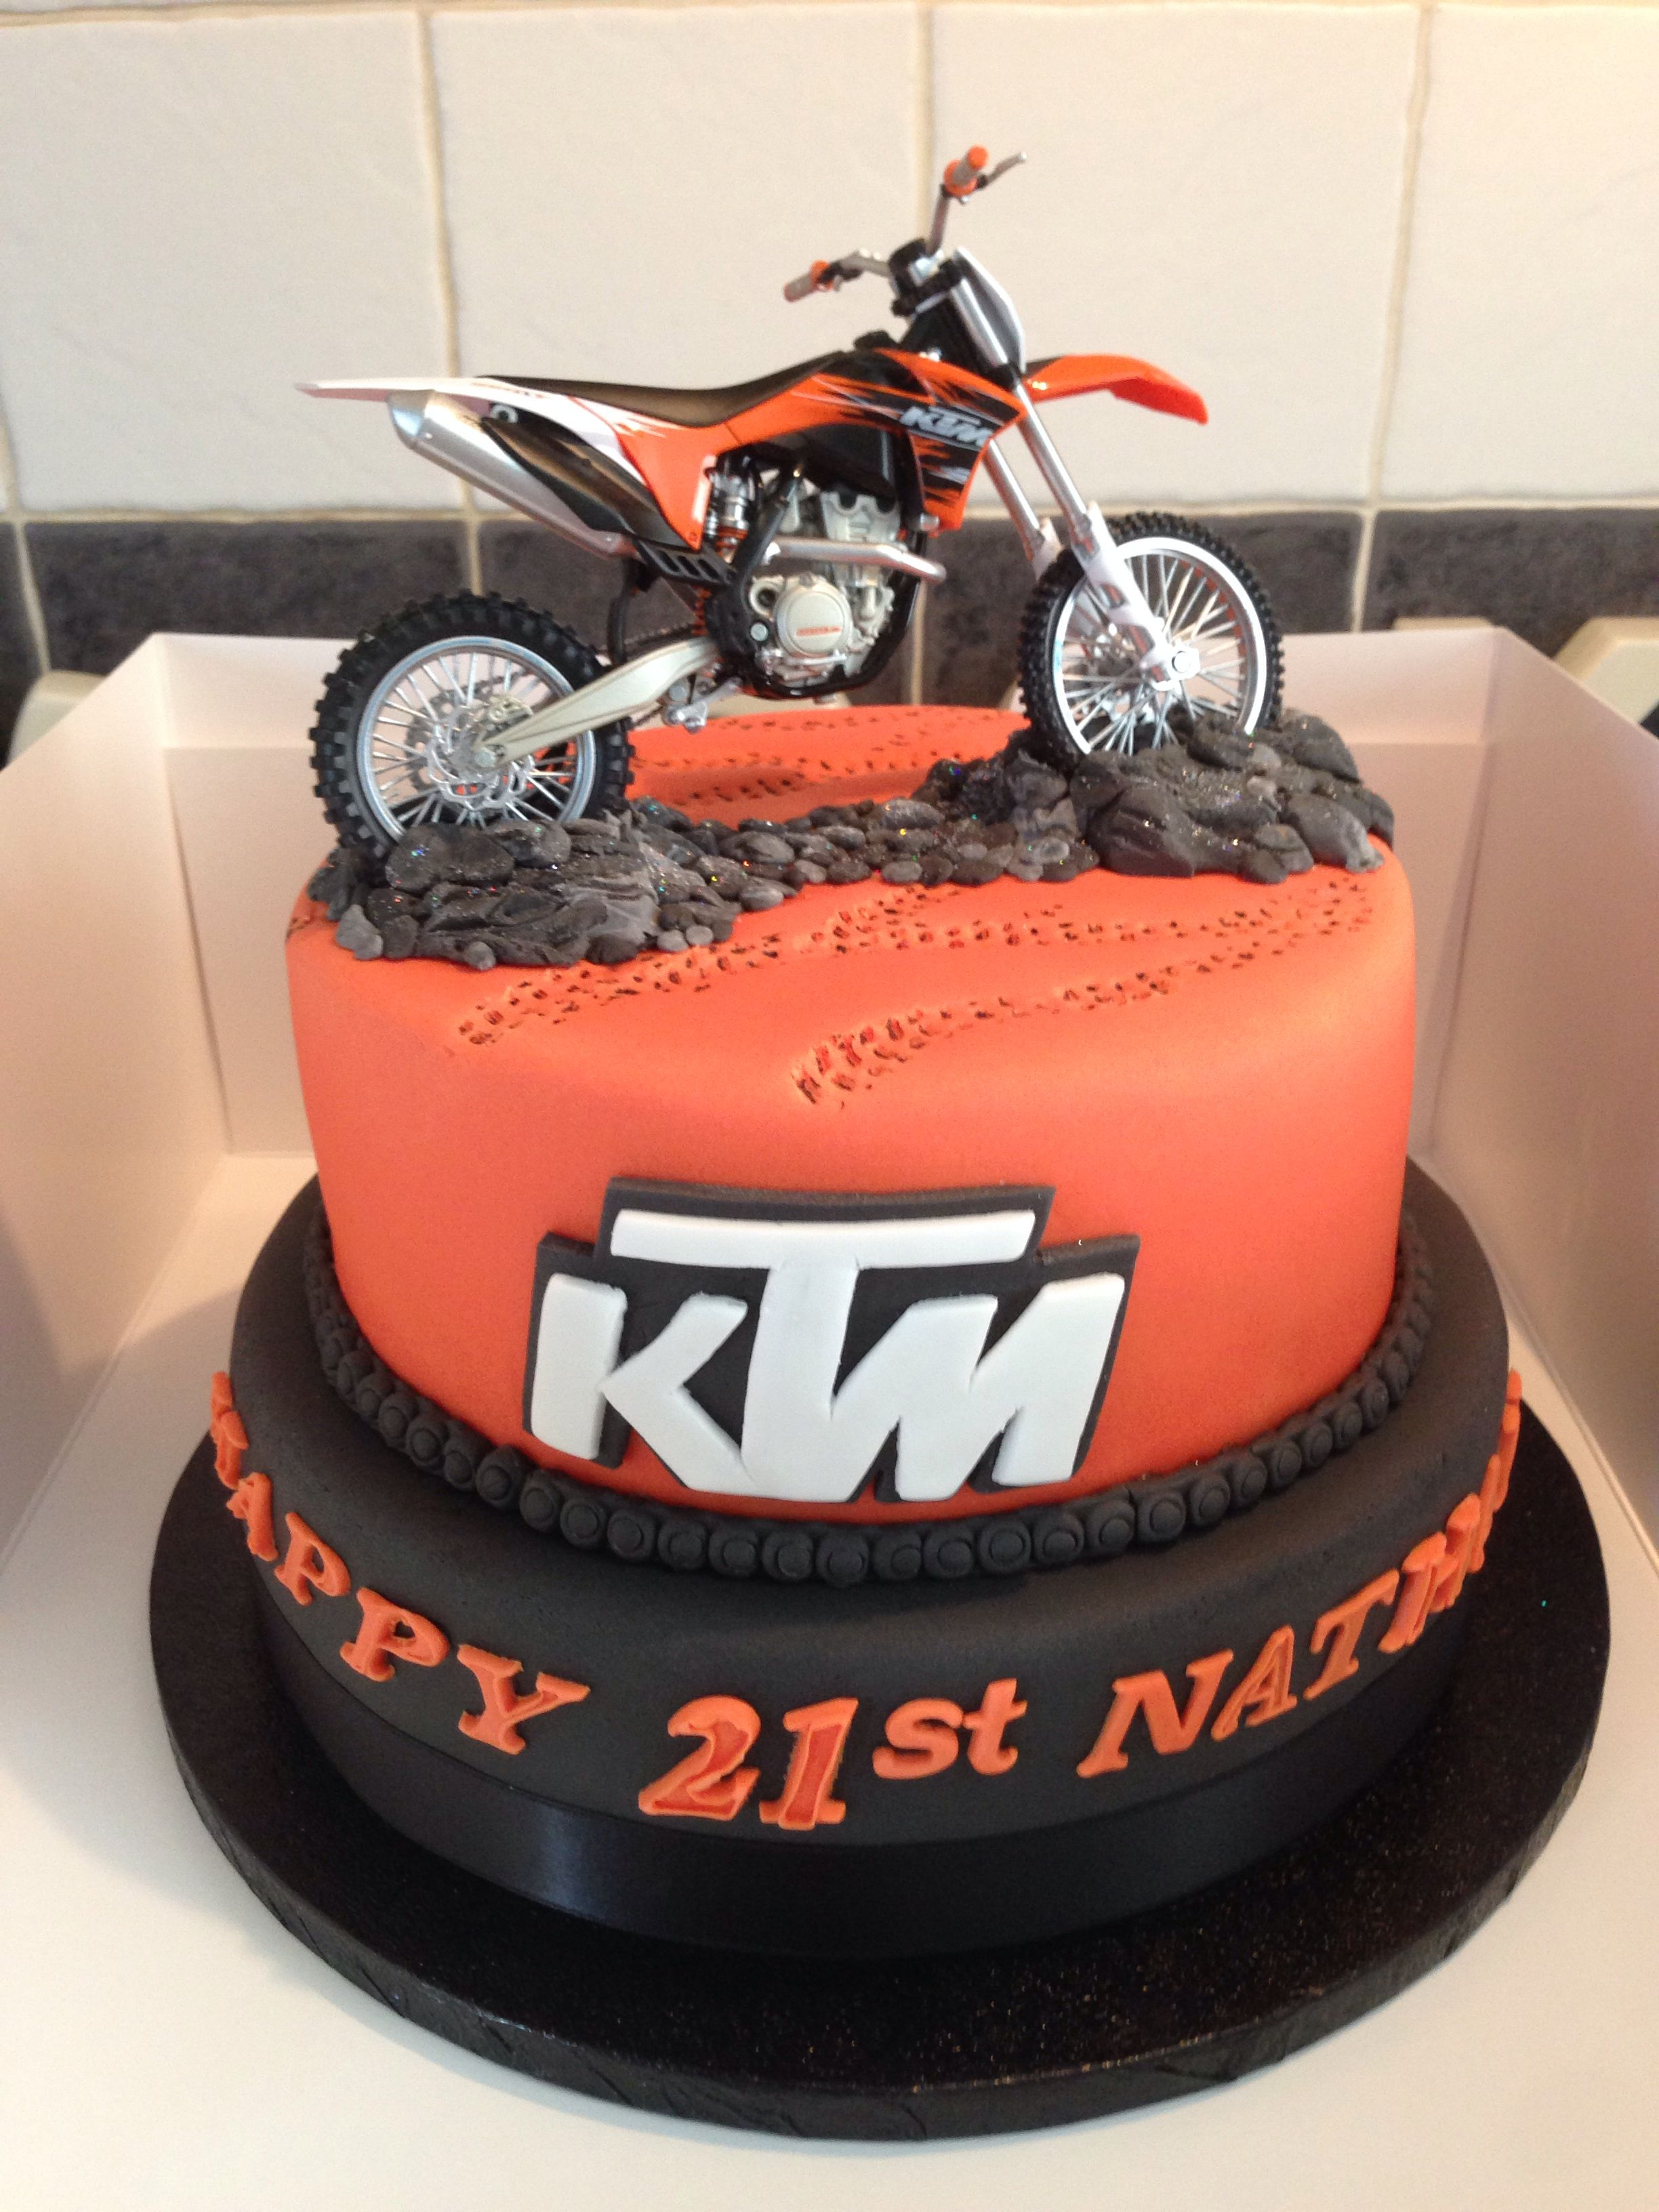 Awesome Birthday Cakes Really Cake With A Ktm Dirt Bike On It